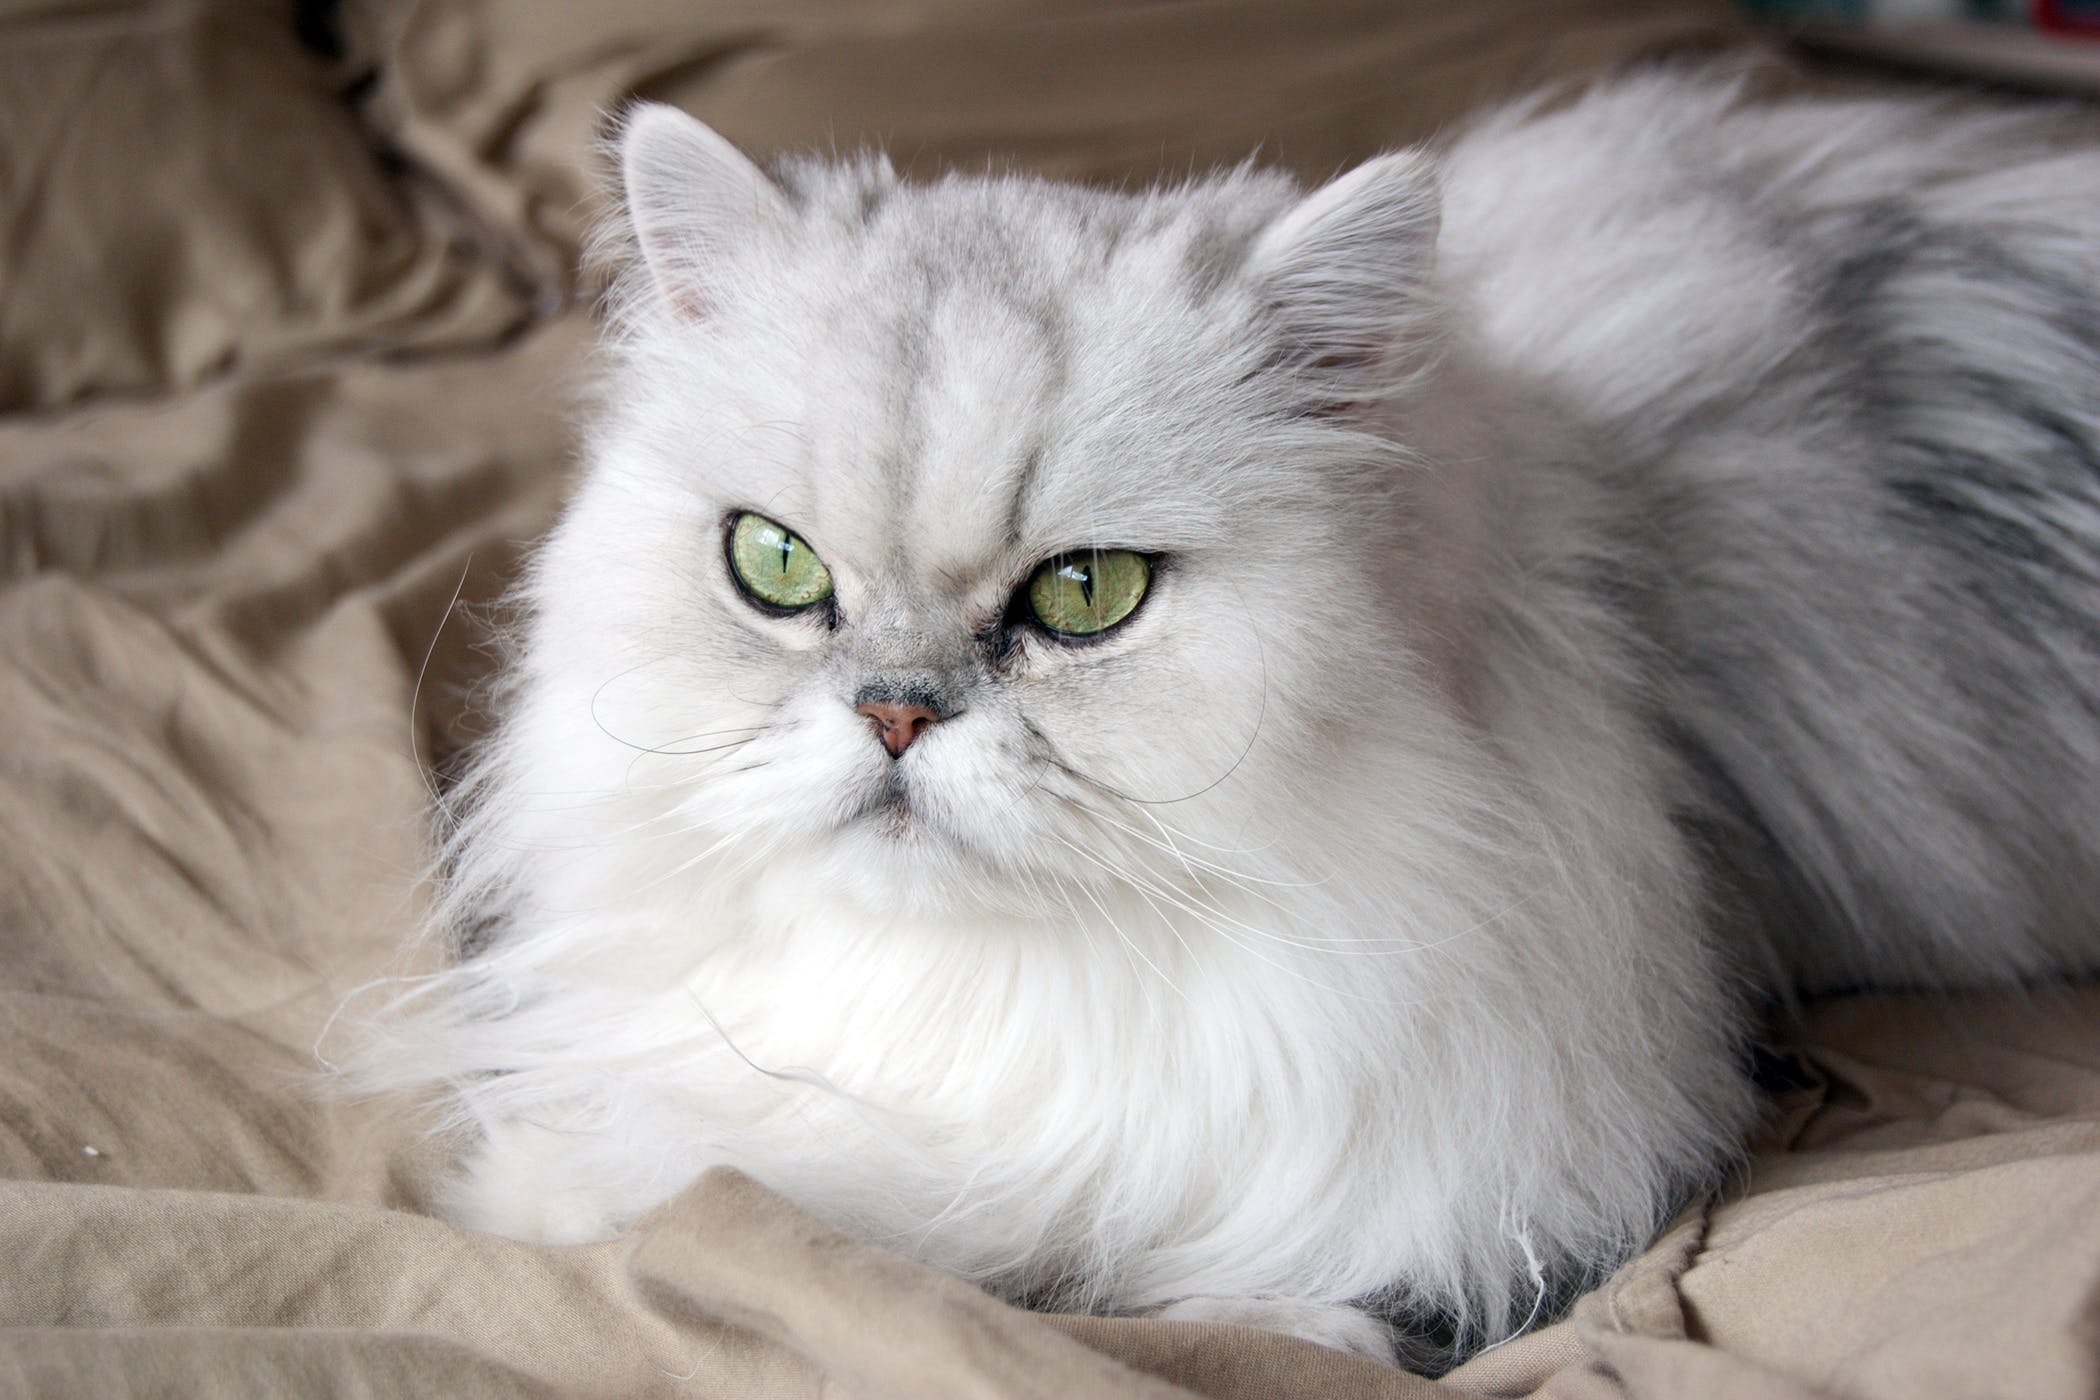 Cystic Biopsy in Cats - Procedure, Efficacy, Recovery, Prevention, Cost